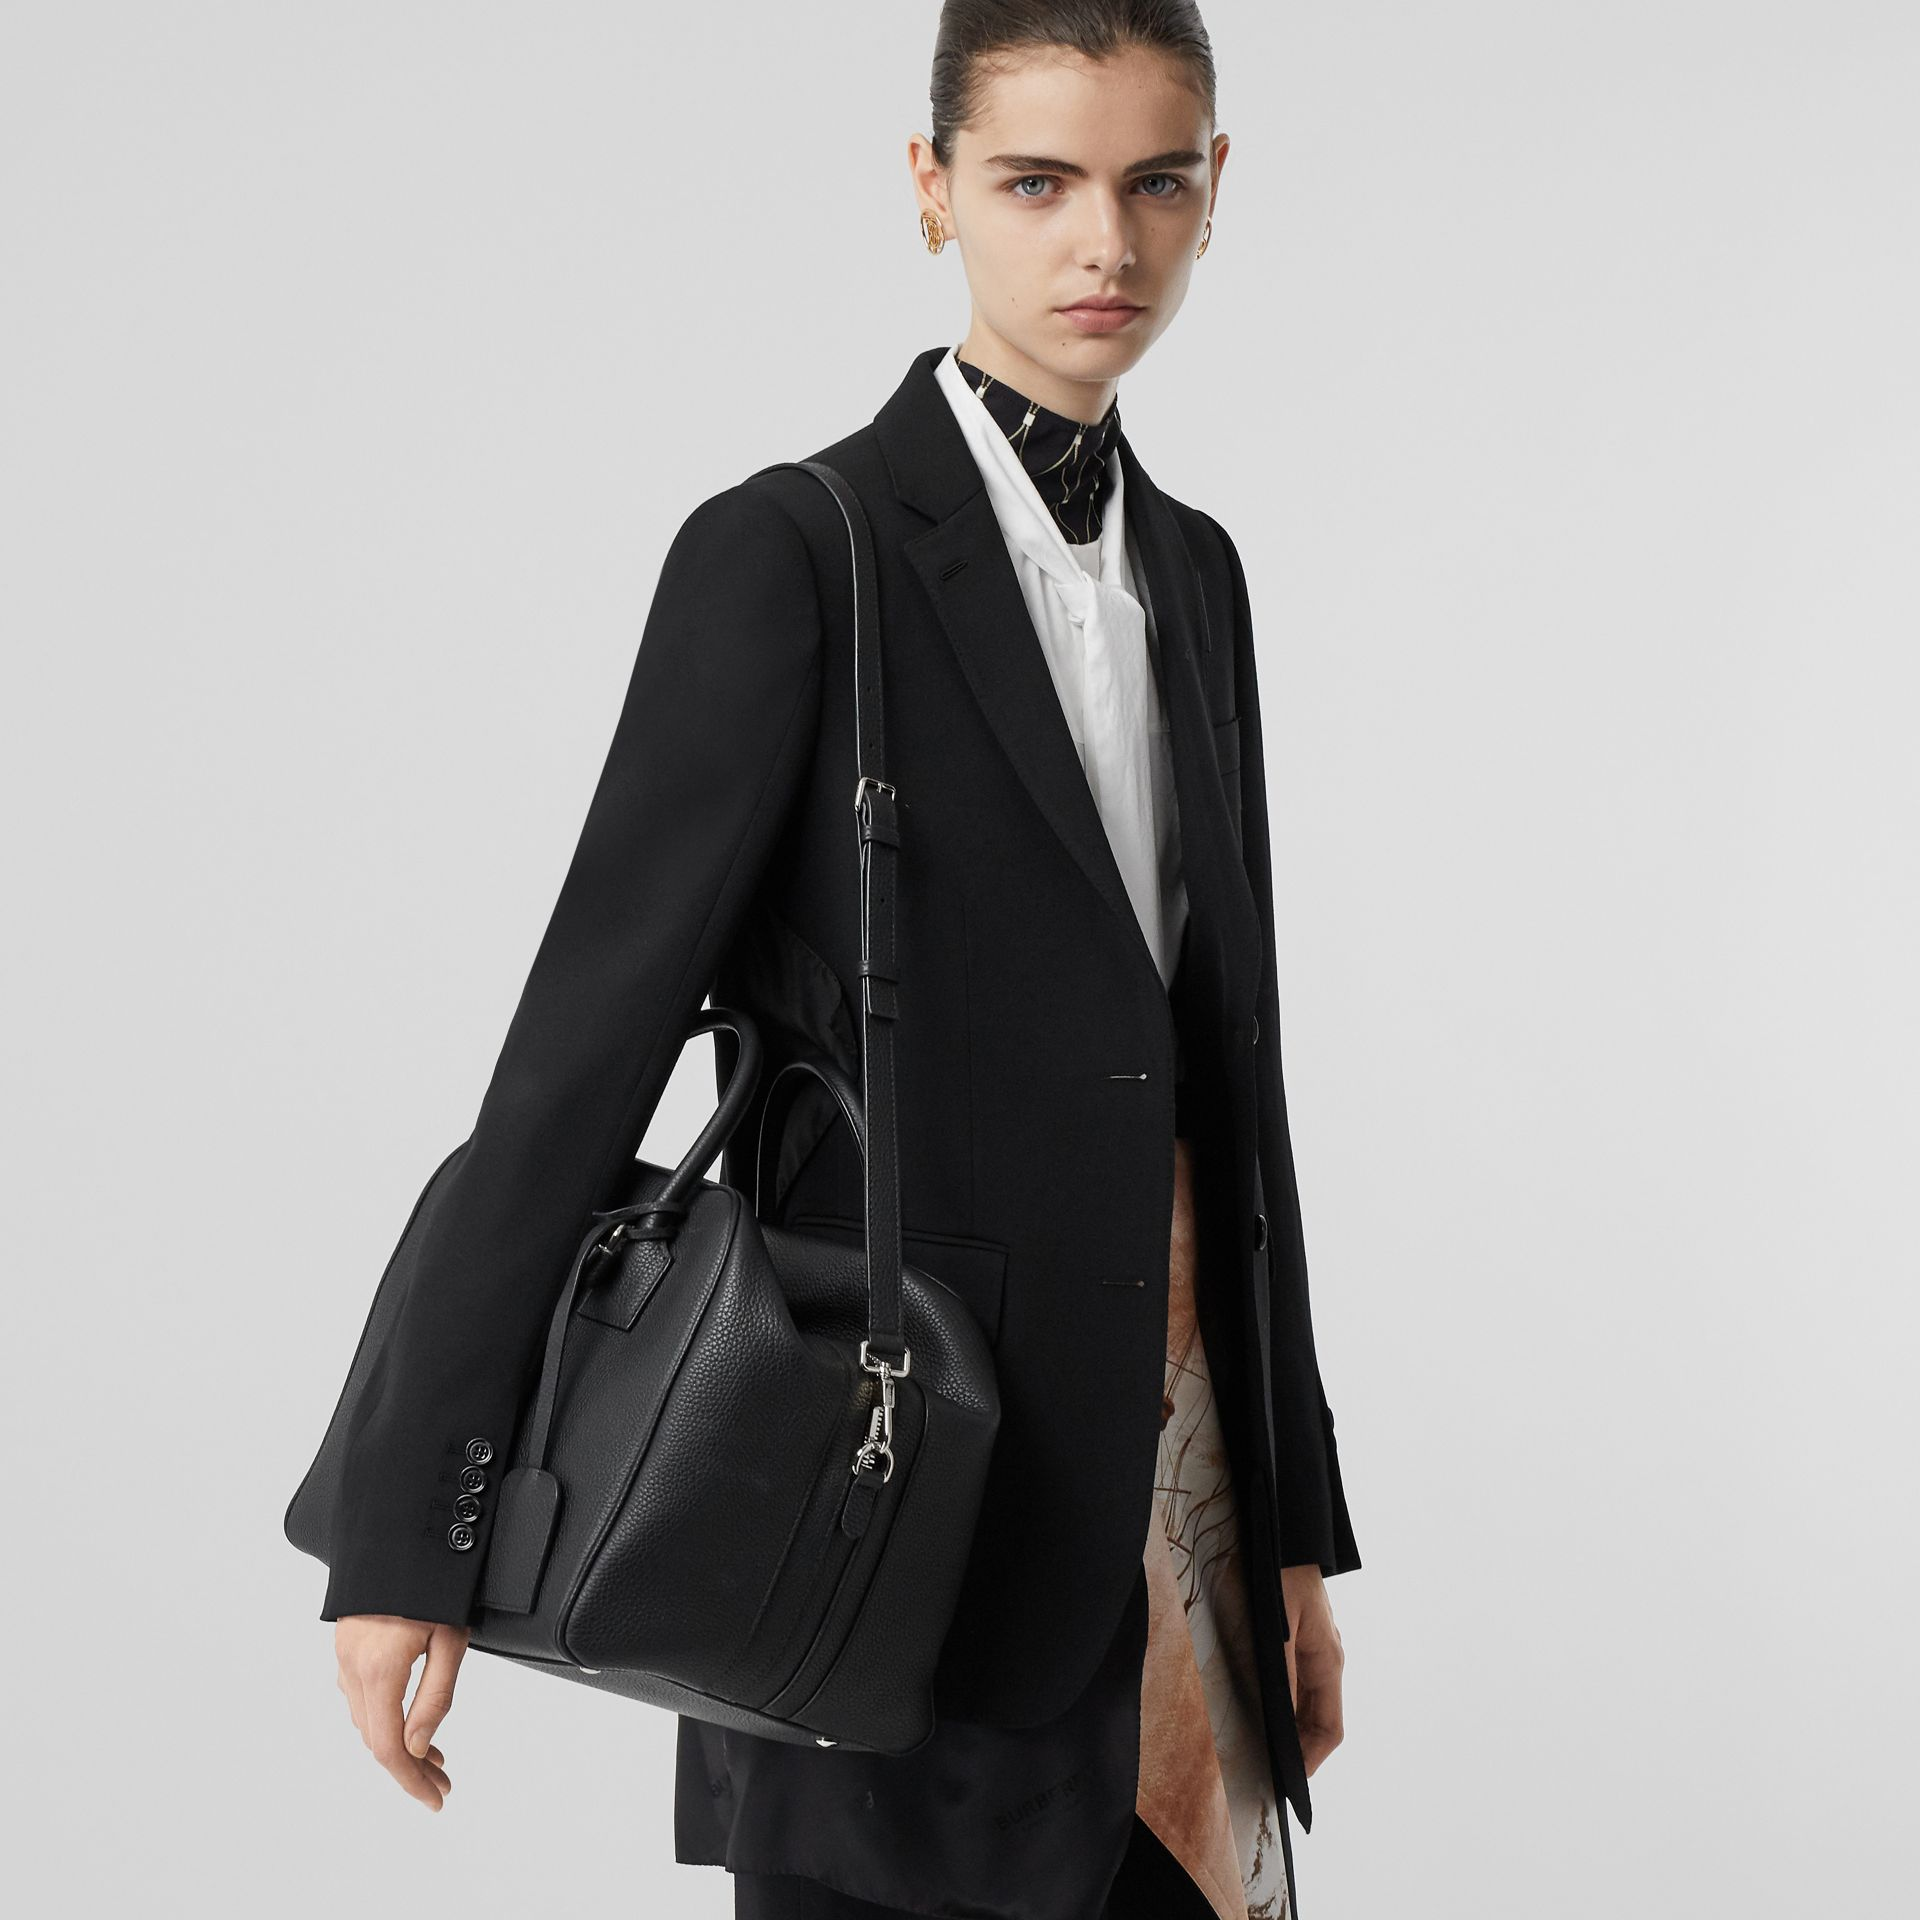 Medium Leather Cube Bag in Black - Women | Burberry Australia - gallery image 2